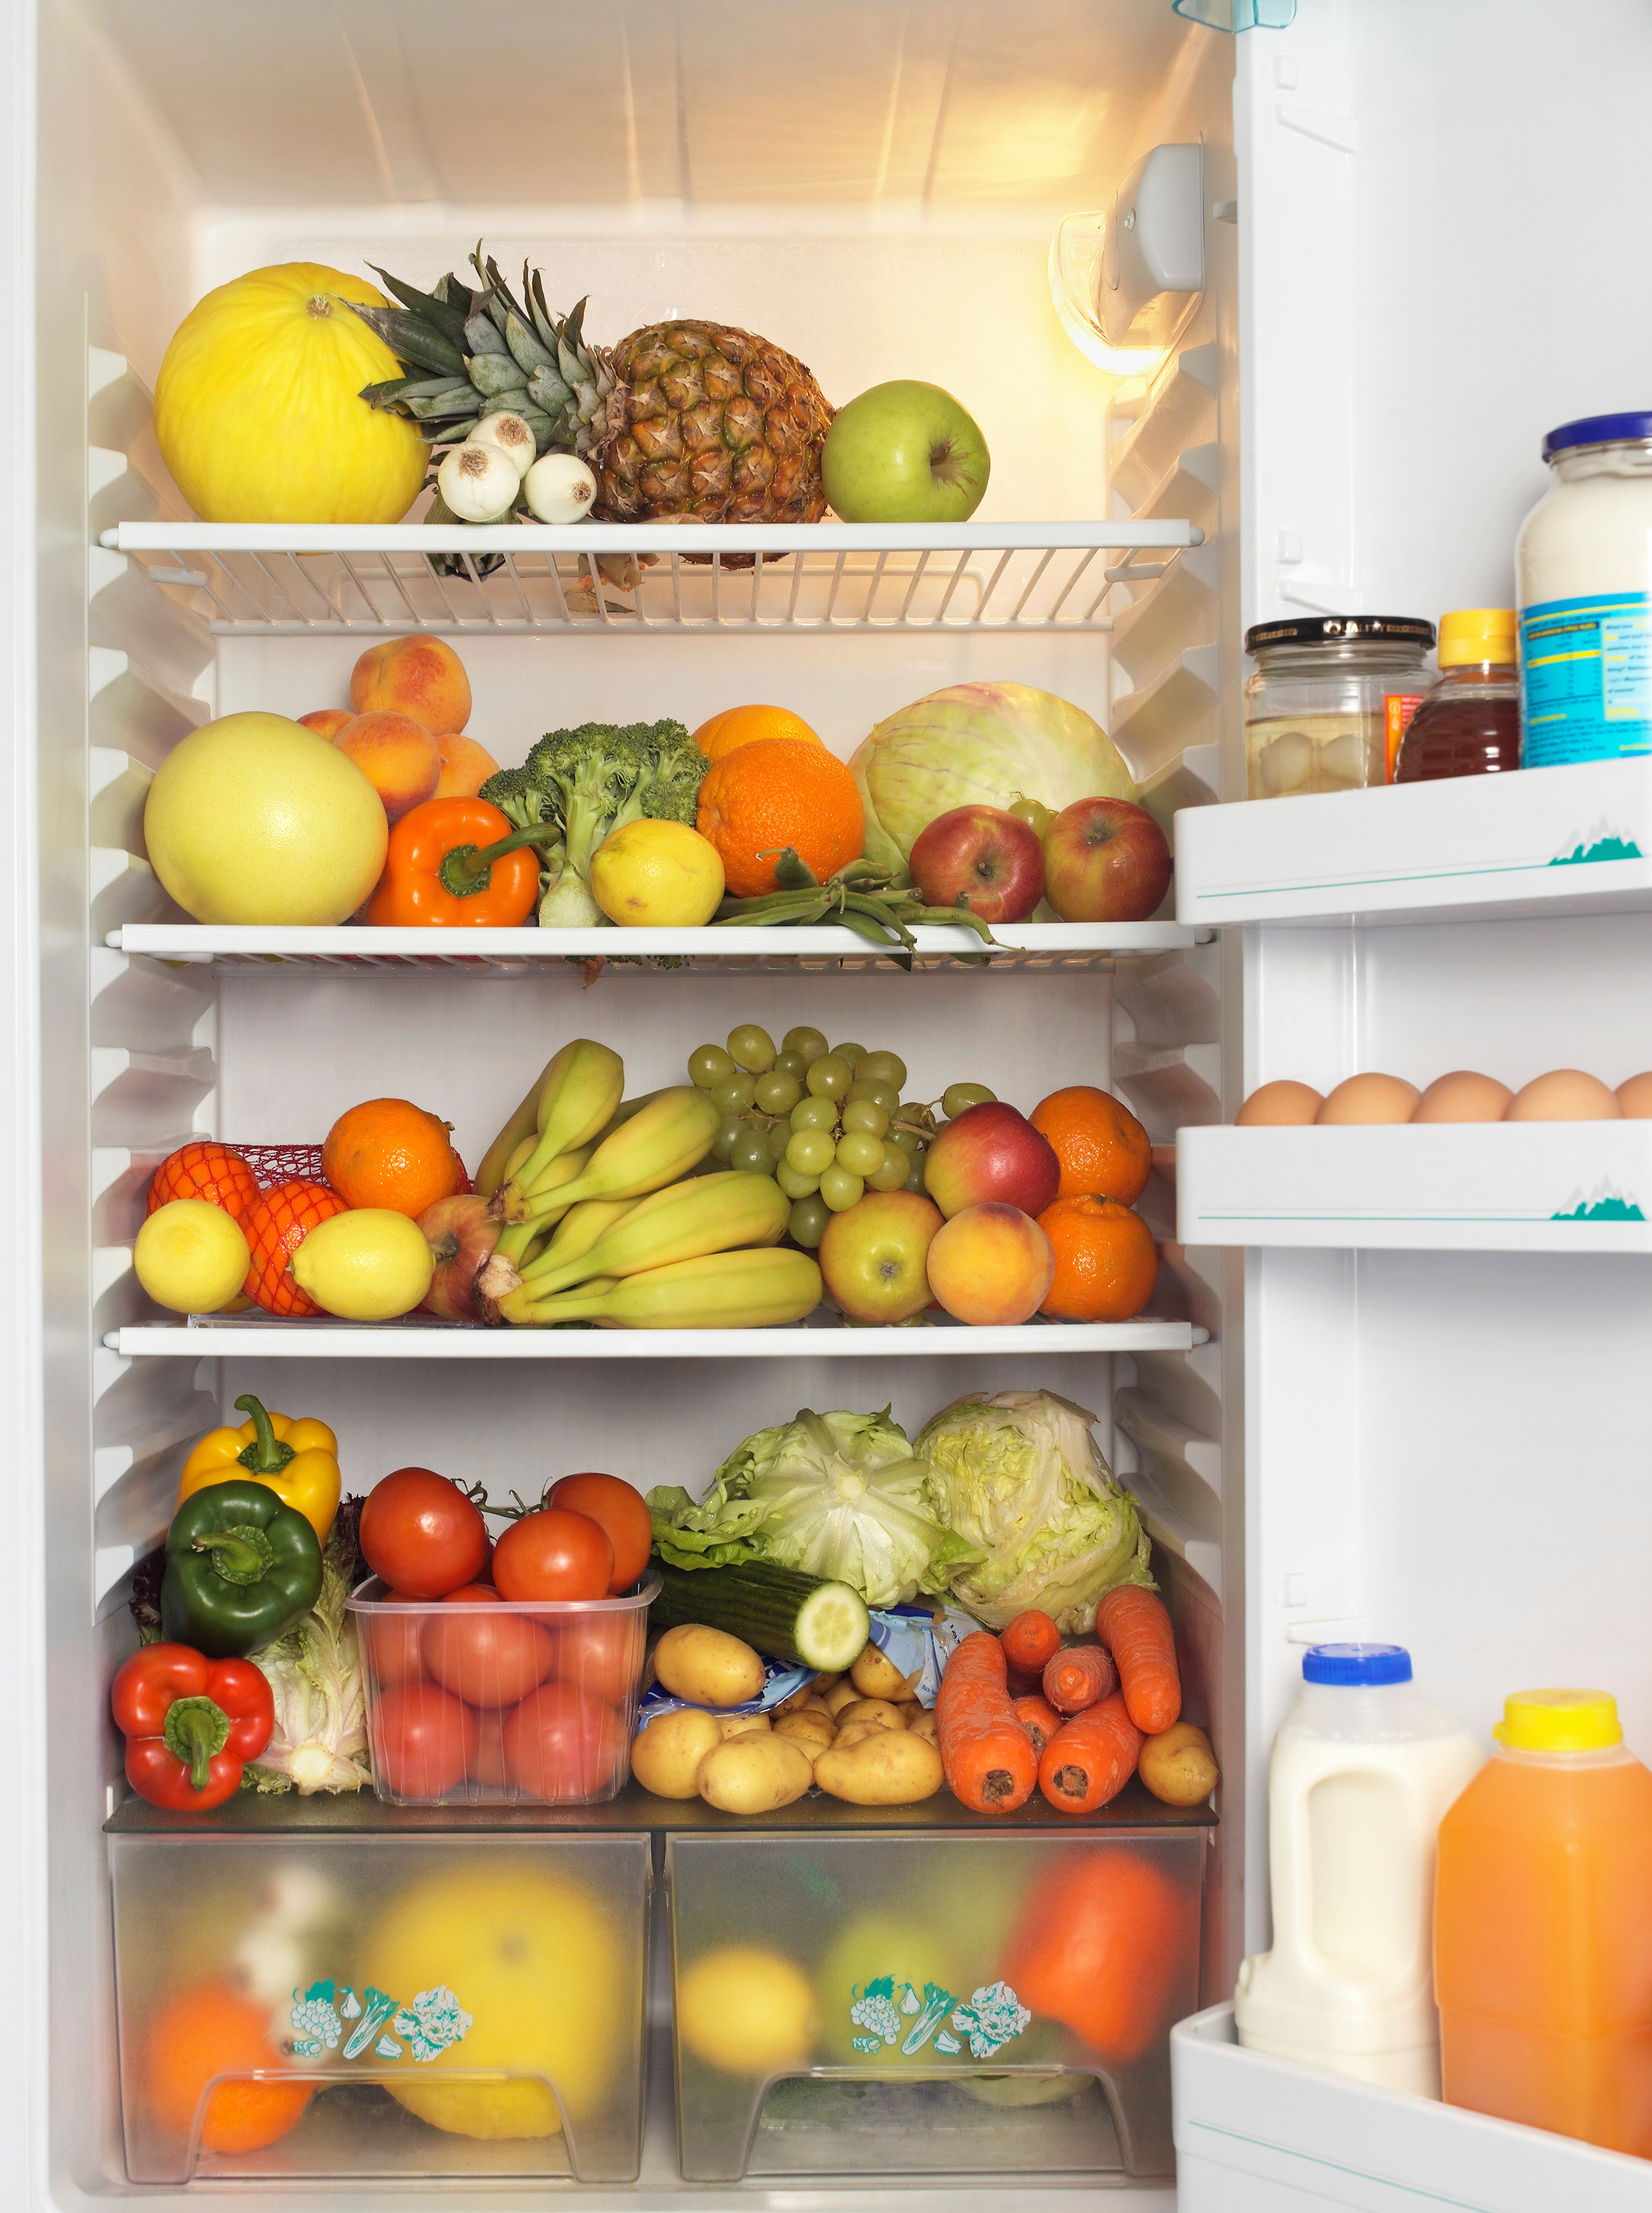 Check out the ultimate shopping list to keep your family feeling well as winter approaches